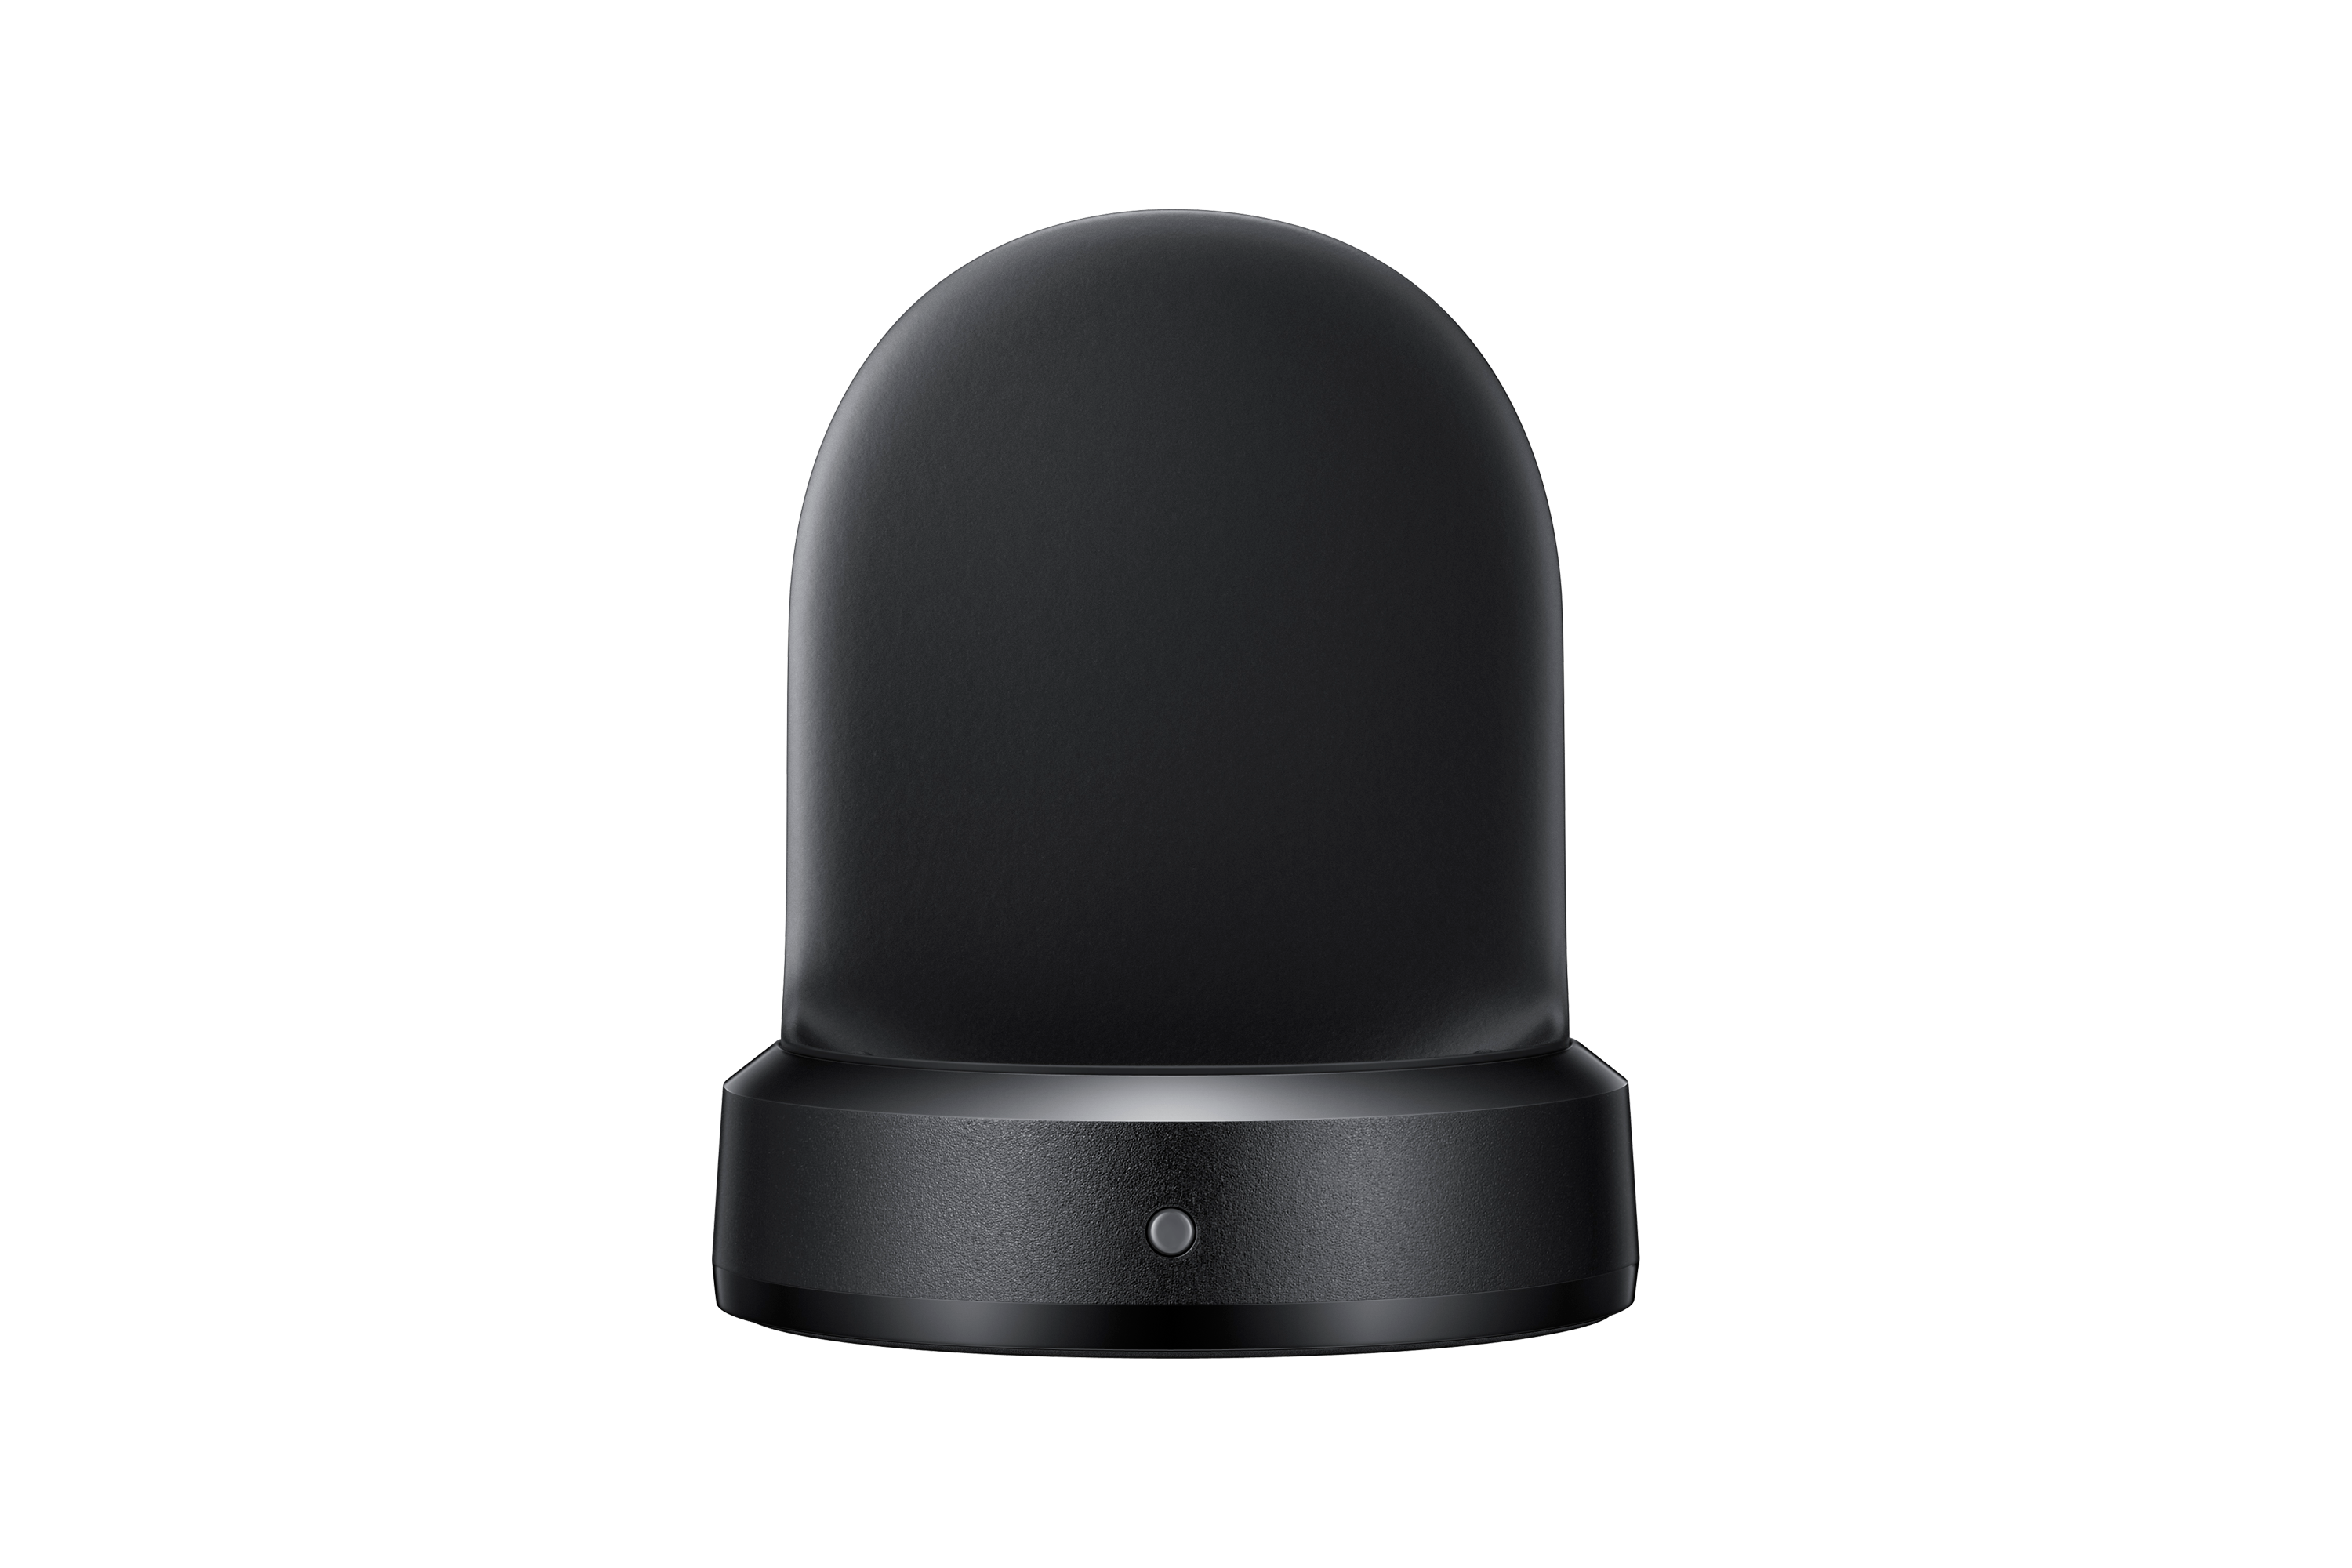 Gear S2 Wireless Charger Dock